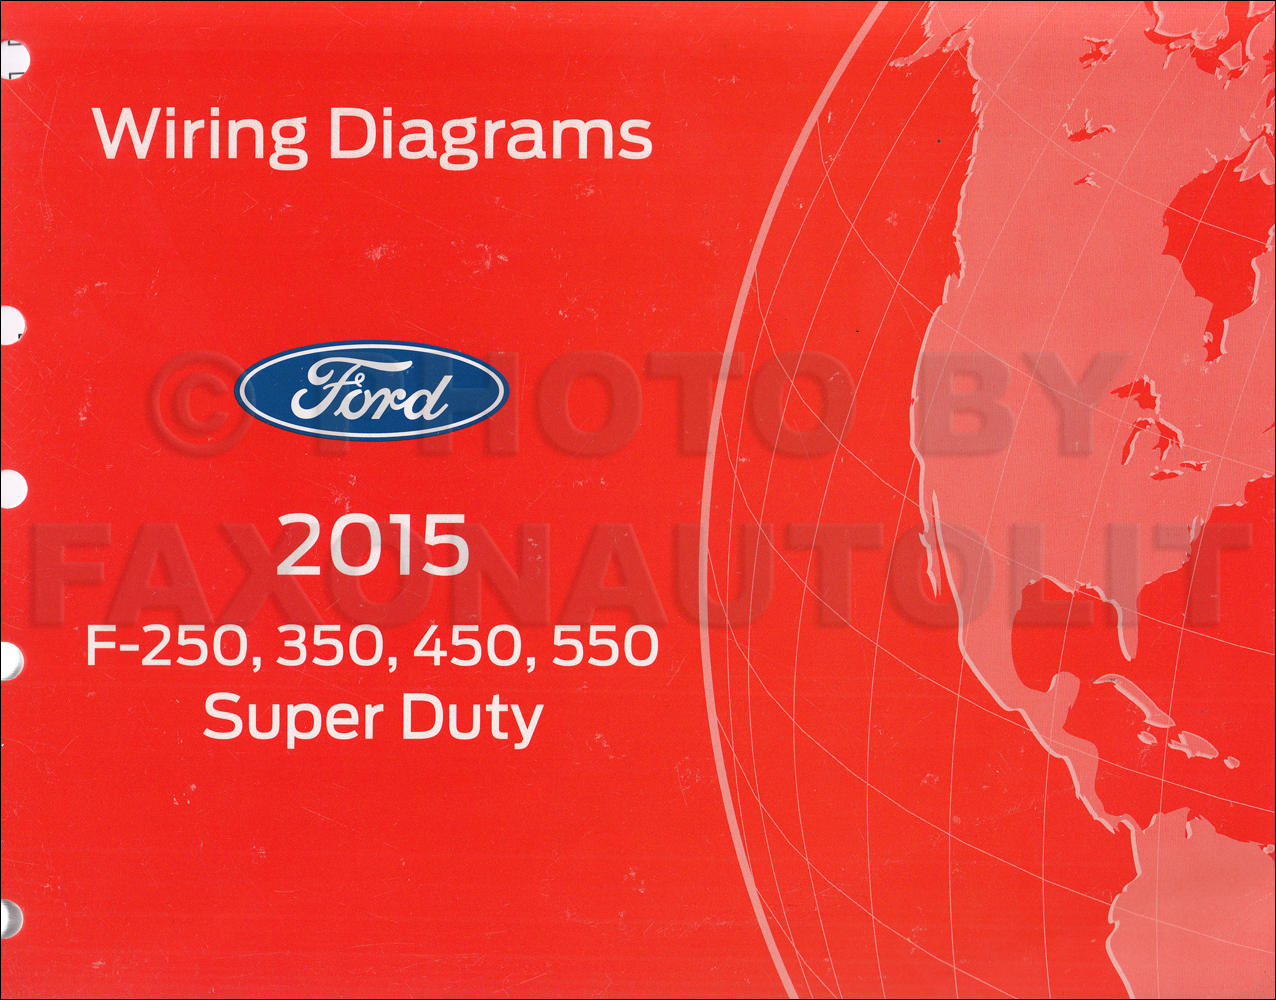 2015 Ford F250-F550 Super DutyTruck Wiring Diagram Manual